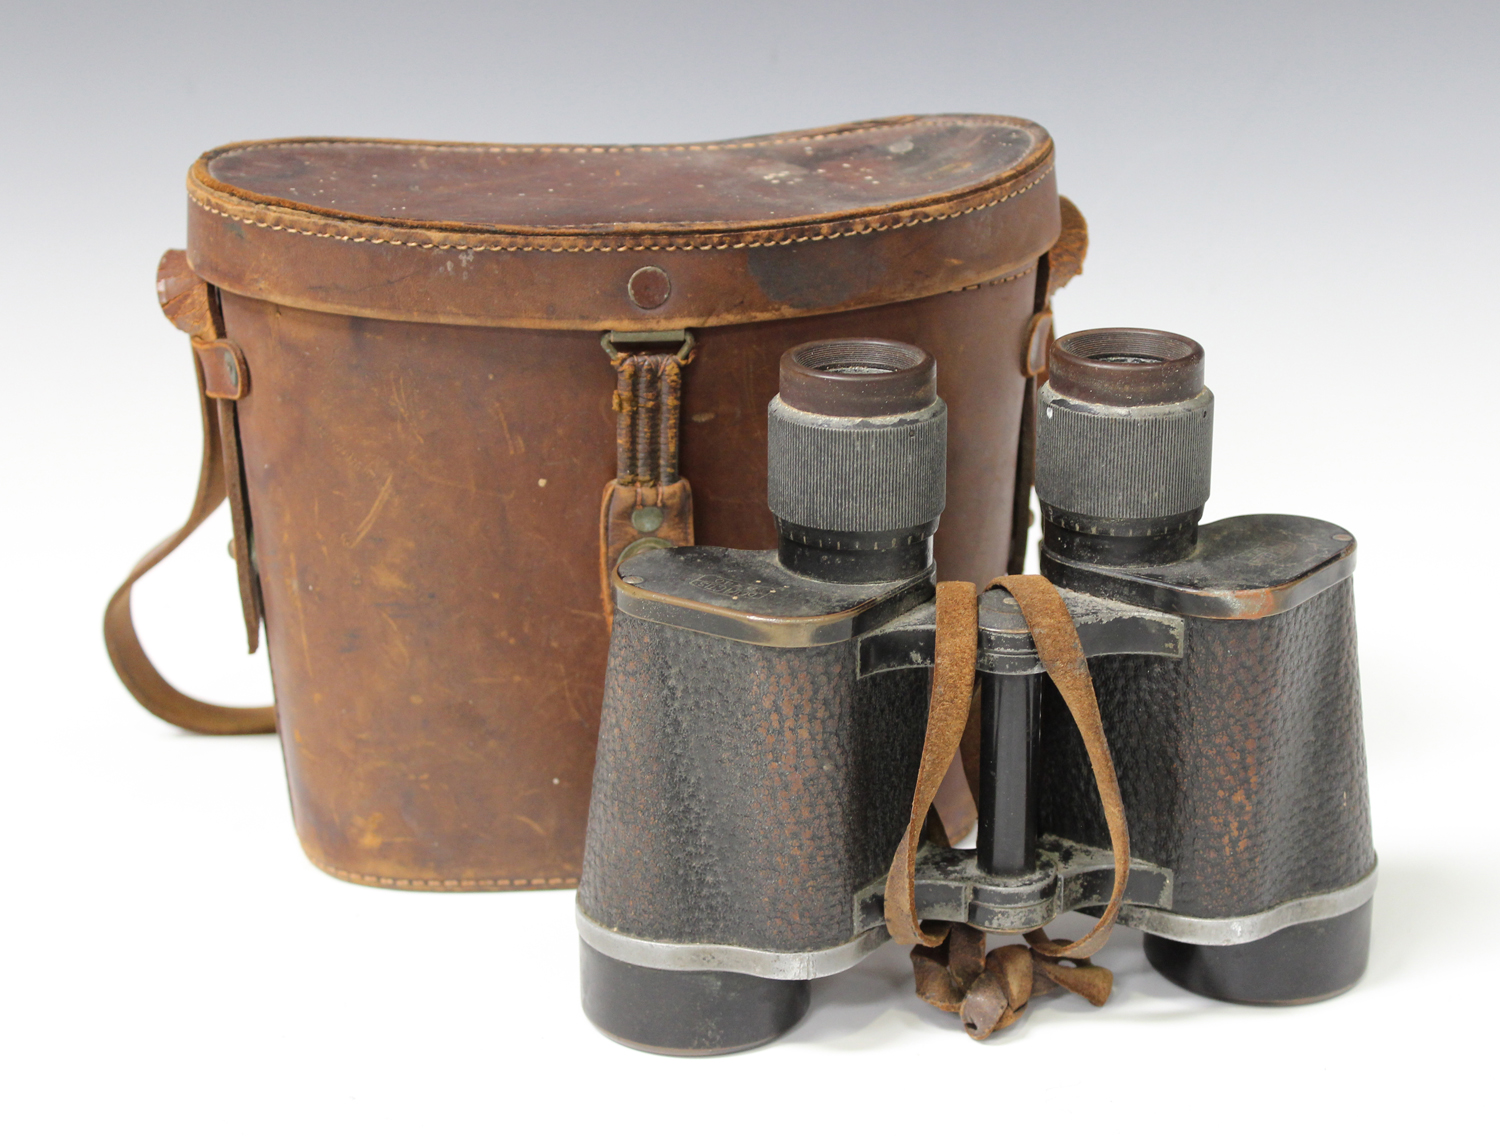 Lot 1177 - A pair of early 20th century Carl Zeiss Jena Delactis 8 x 40 binoculars, with brown leather case.